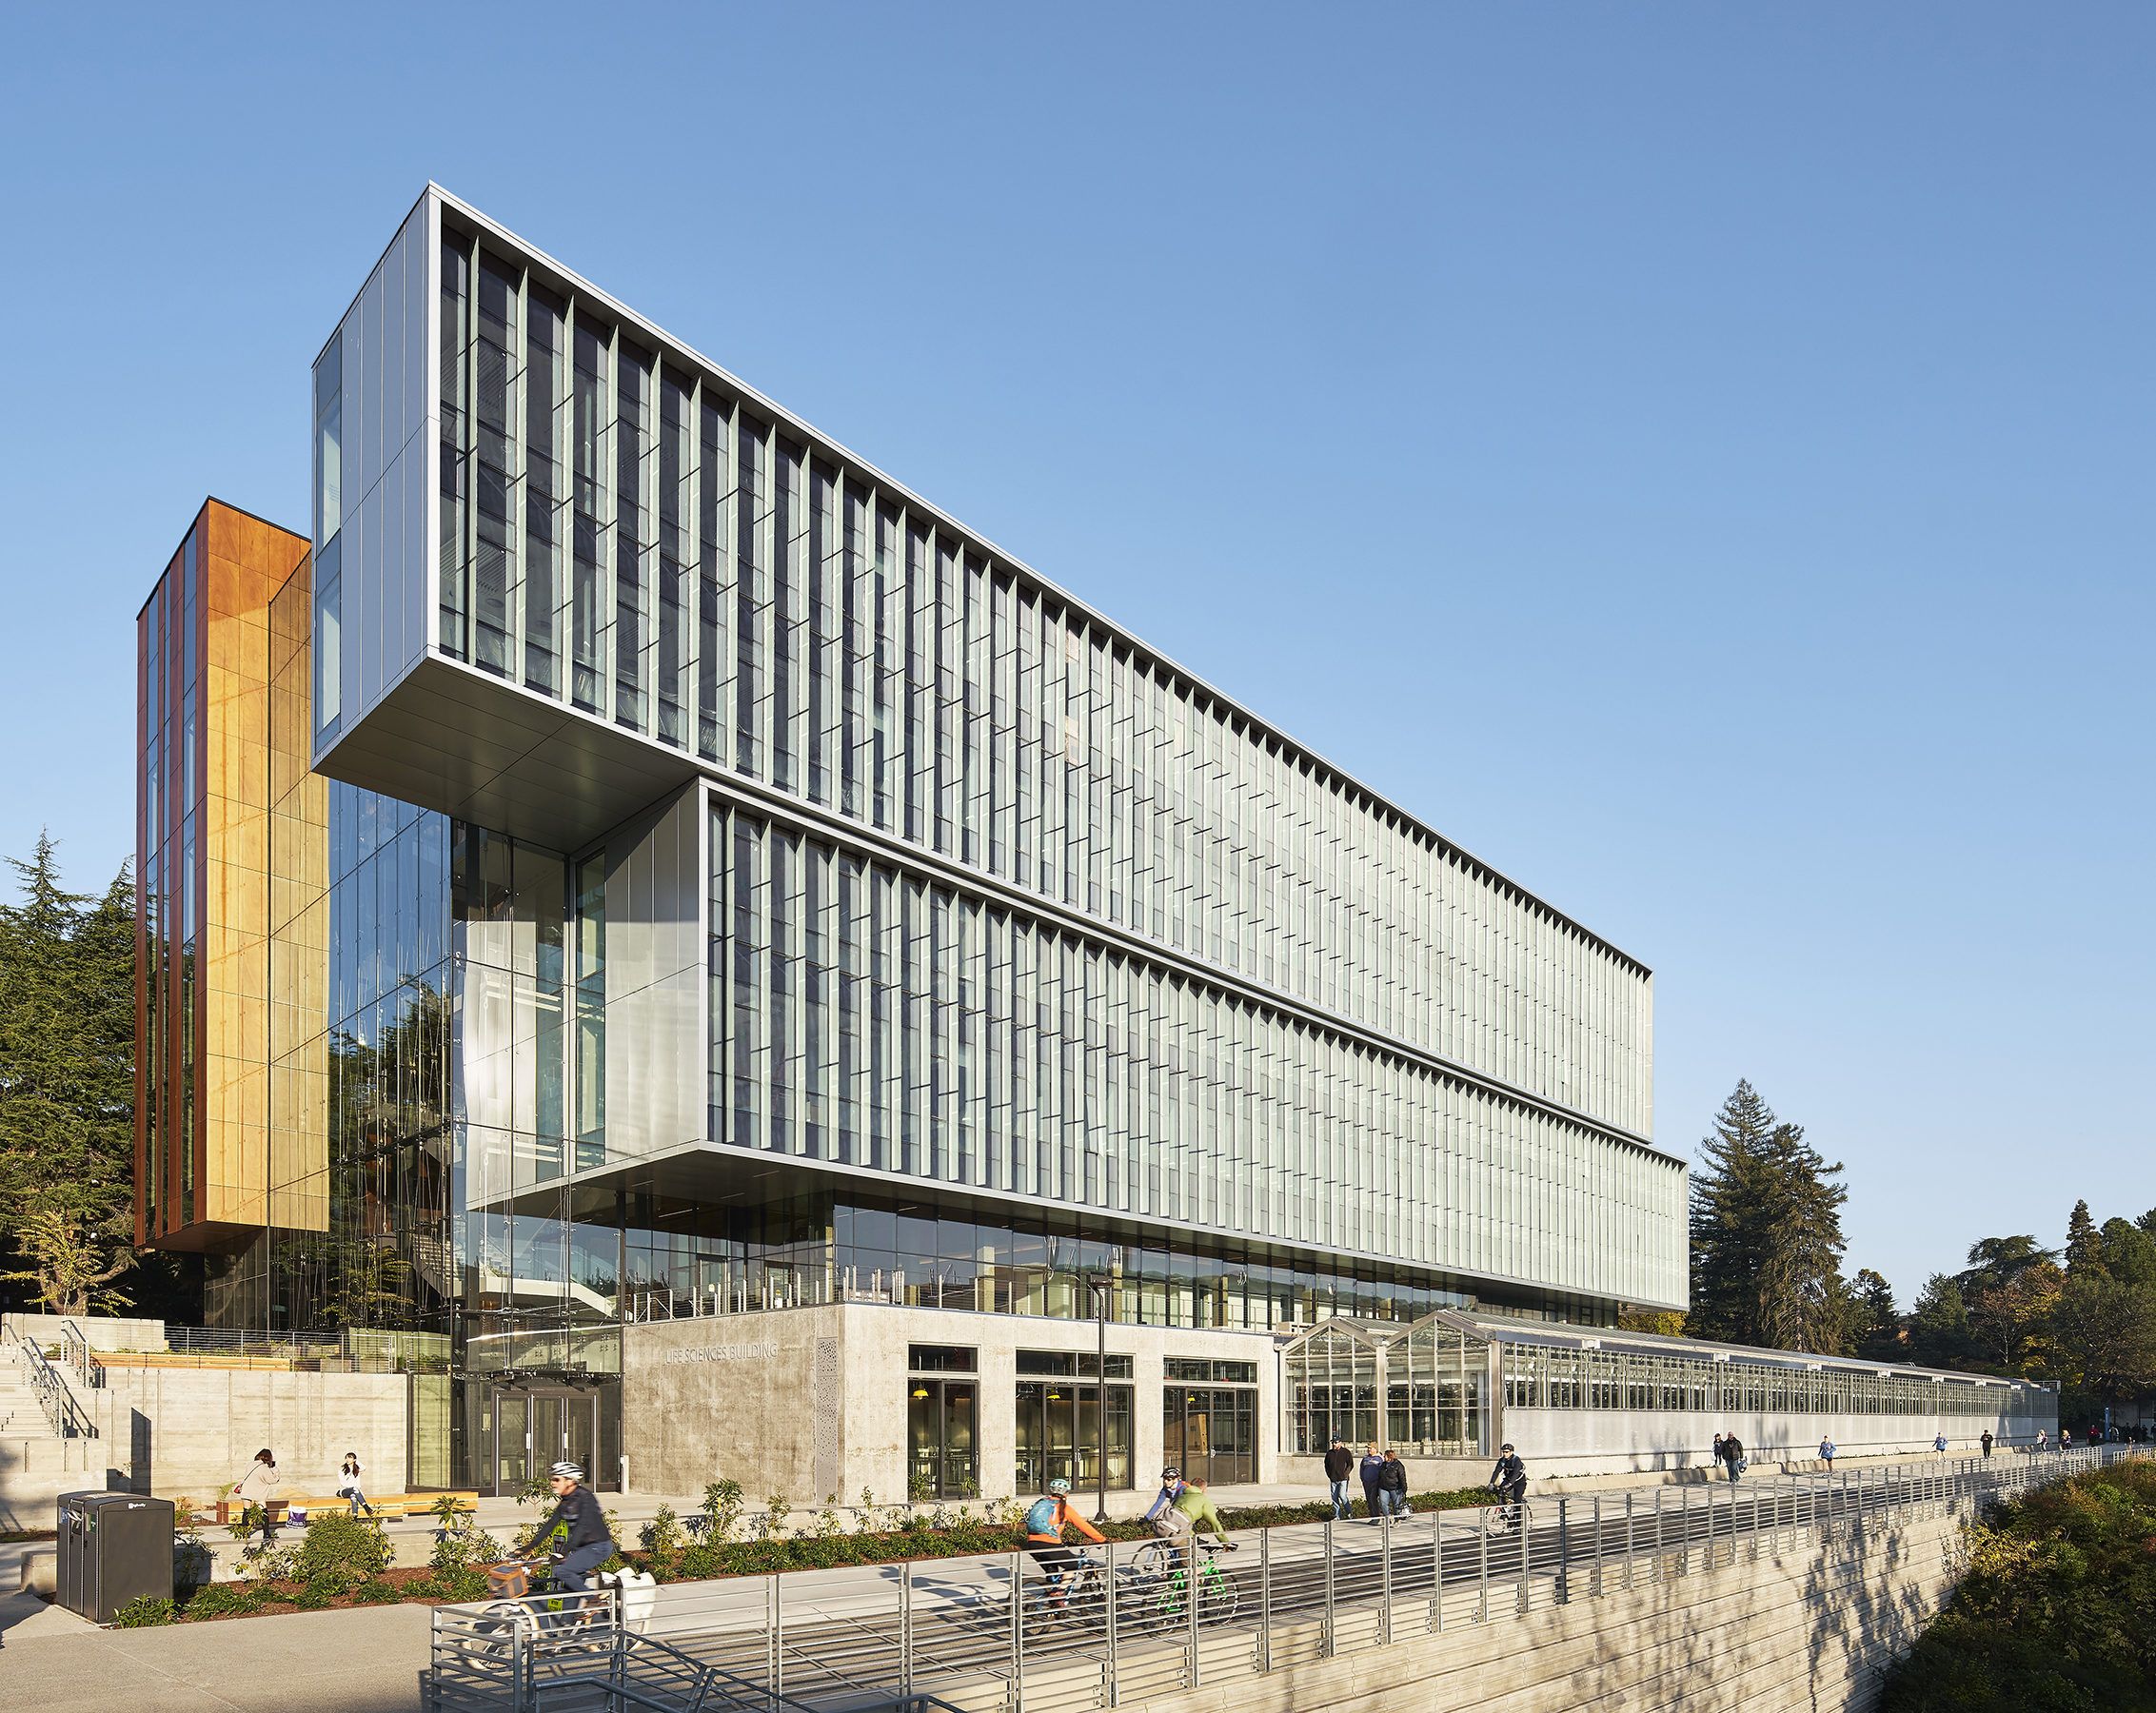 View of the south facade of UW Life Sciences Building with people biking and walking by on the Burke Gilman trail.